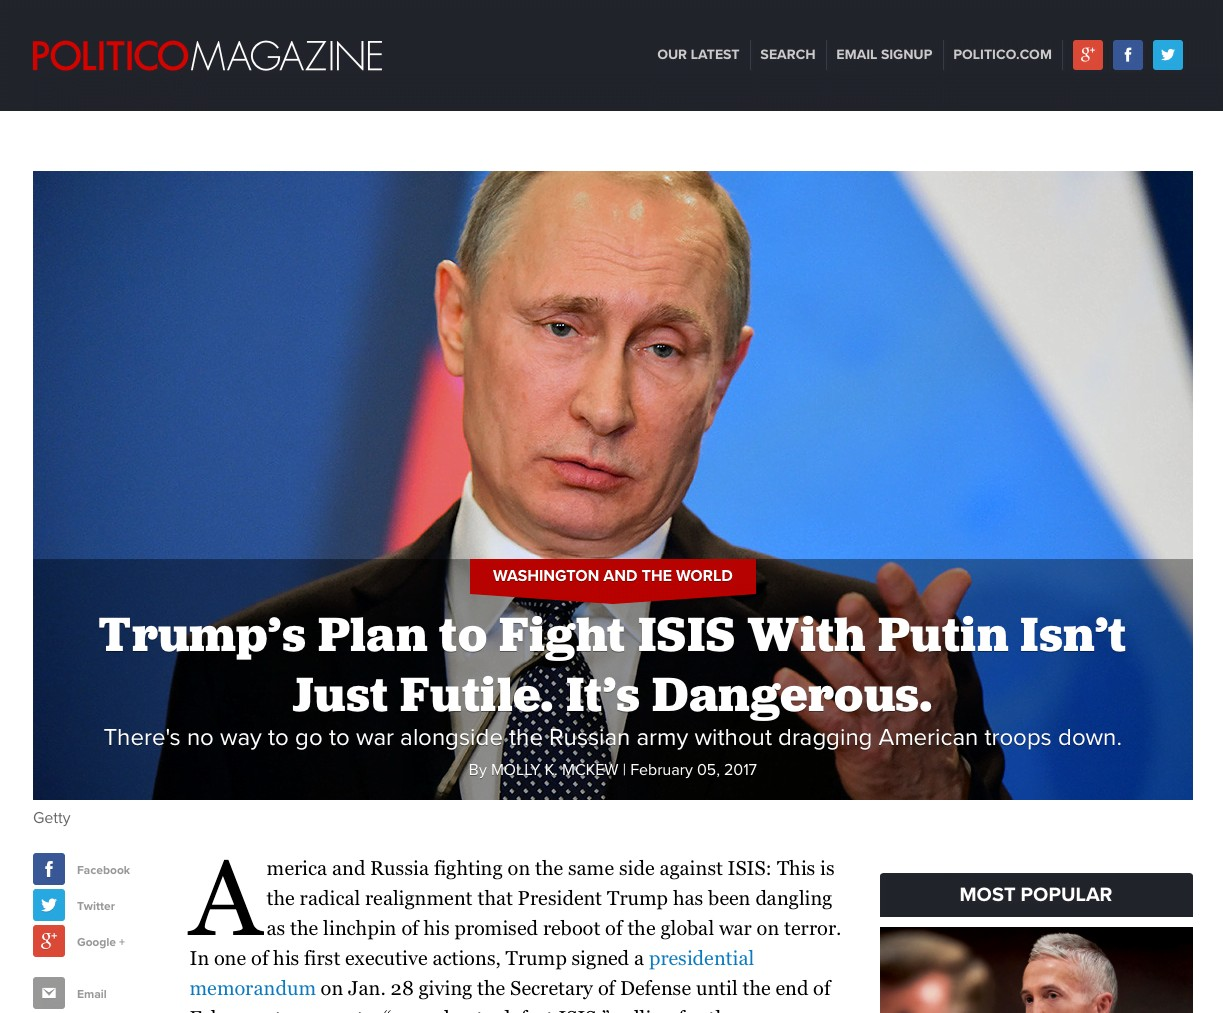 Vladimir Putin personally ordered an interference campaign to disrupt the 2016 U.S. elections. History will judge him harshly.